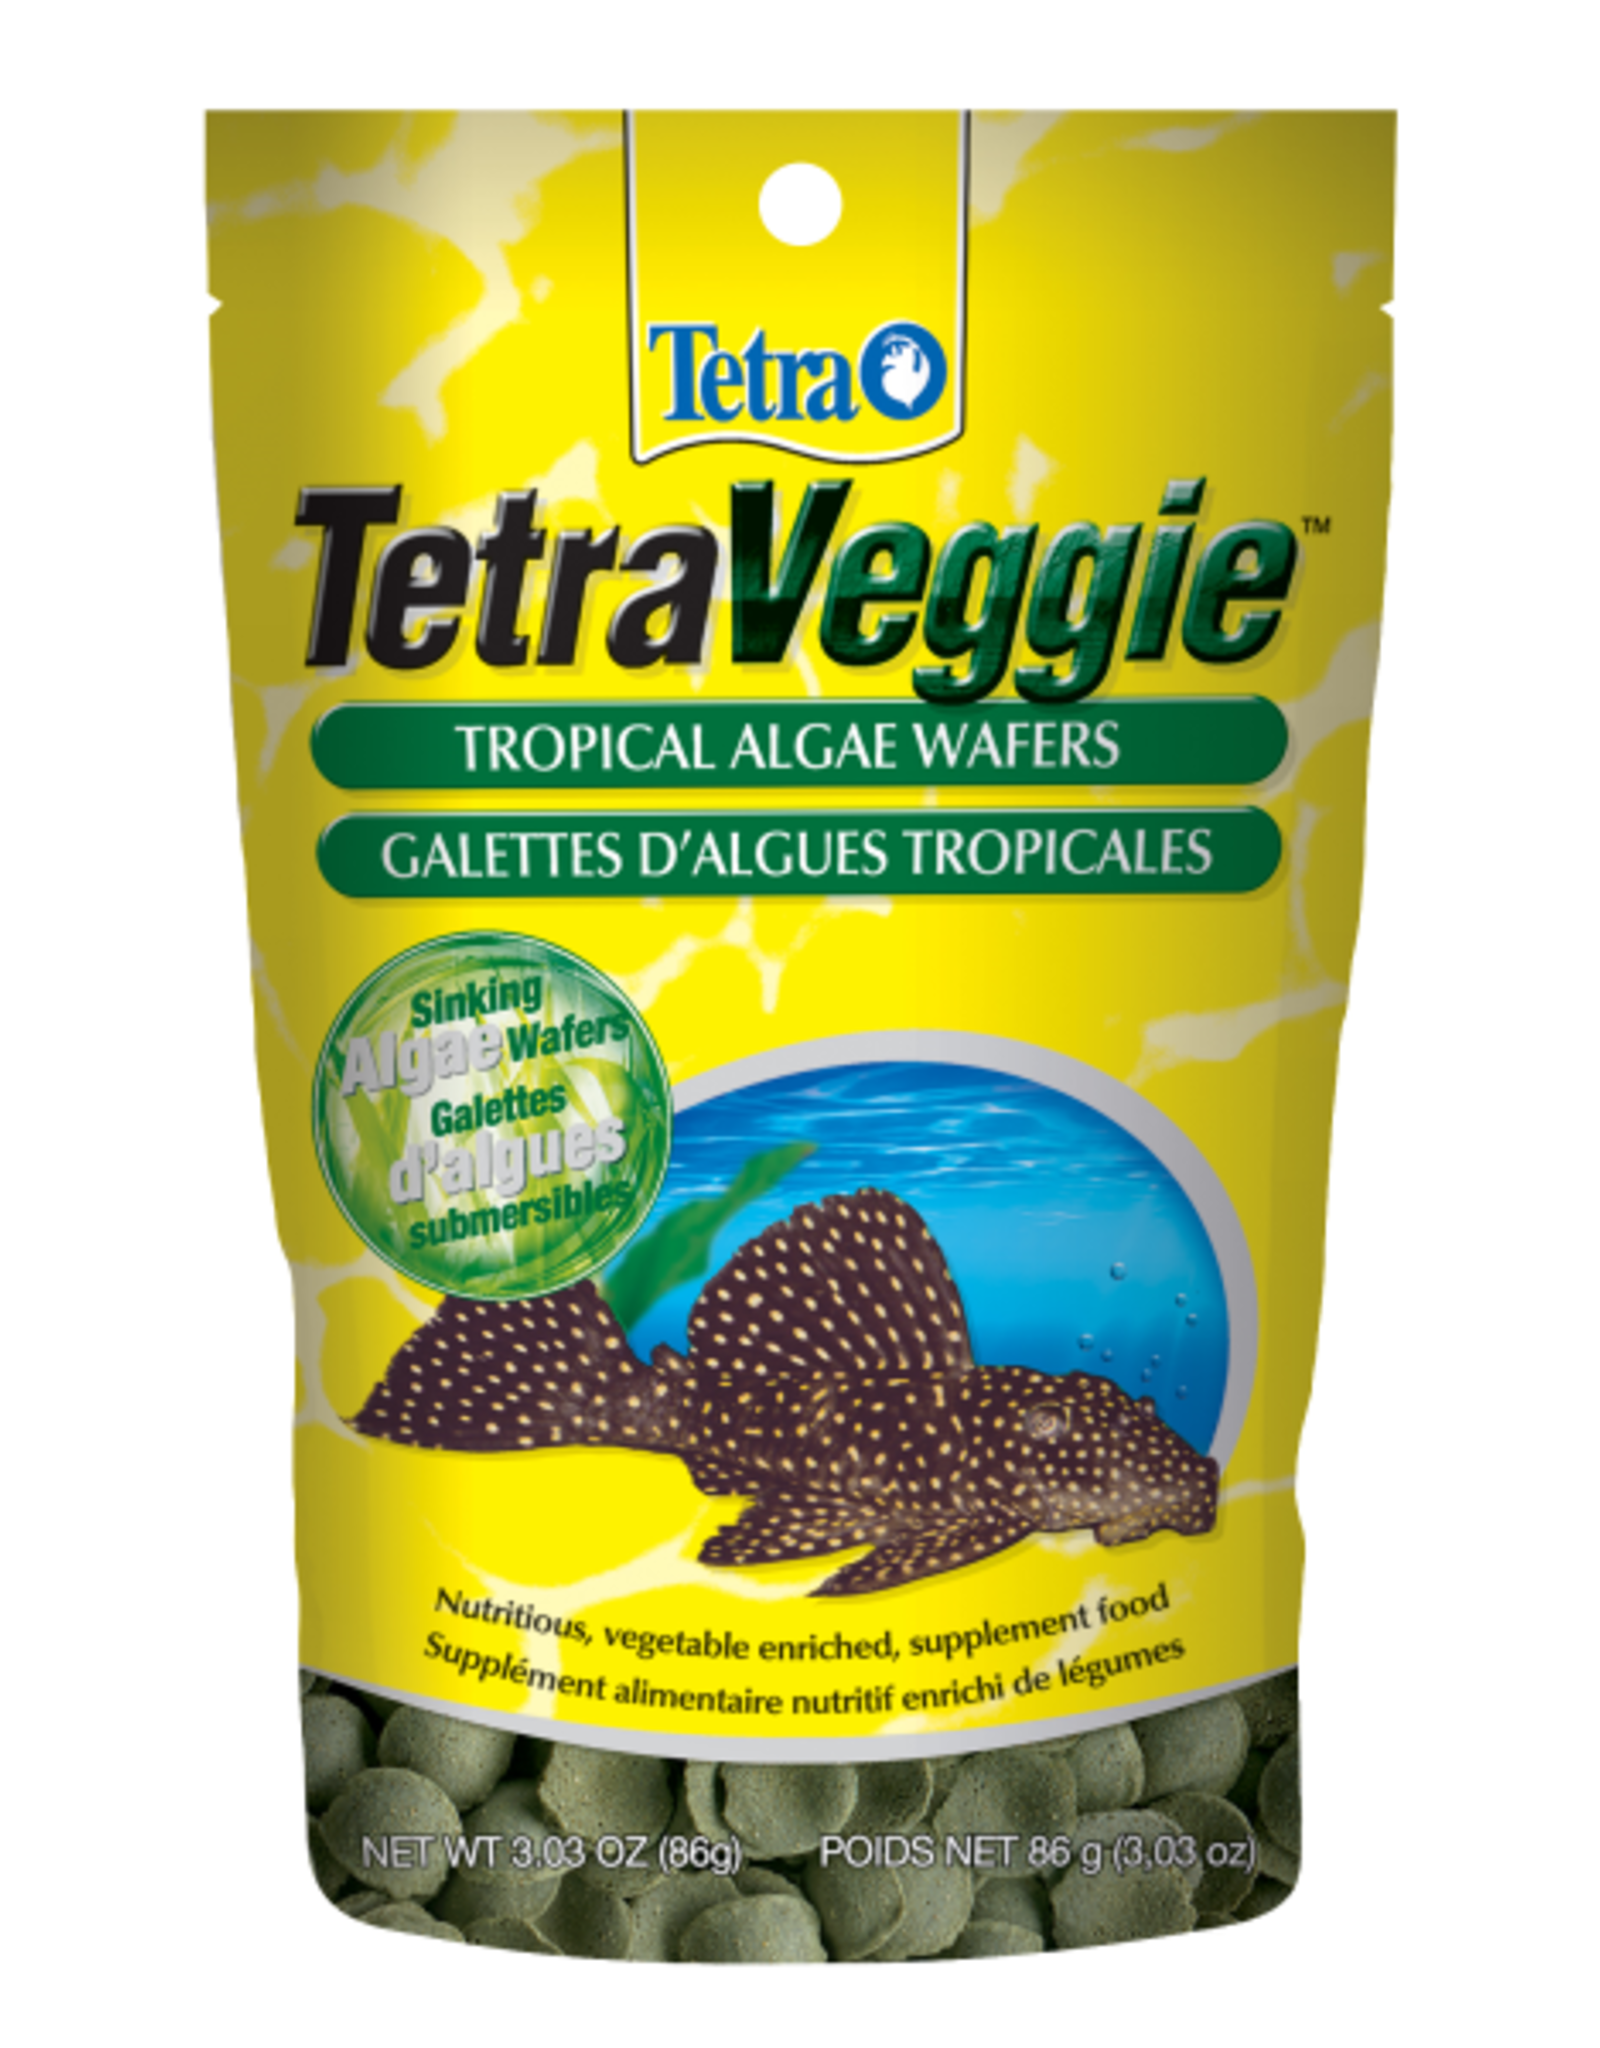 TETRA Tetra Veggie Wafers 3.03 oz